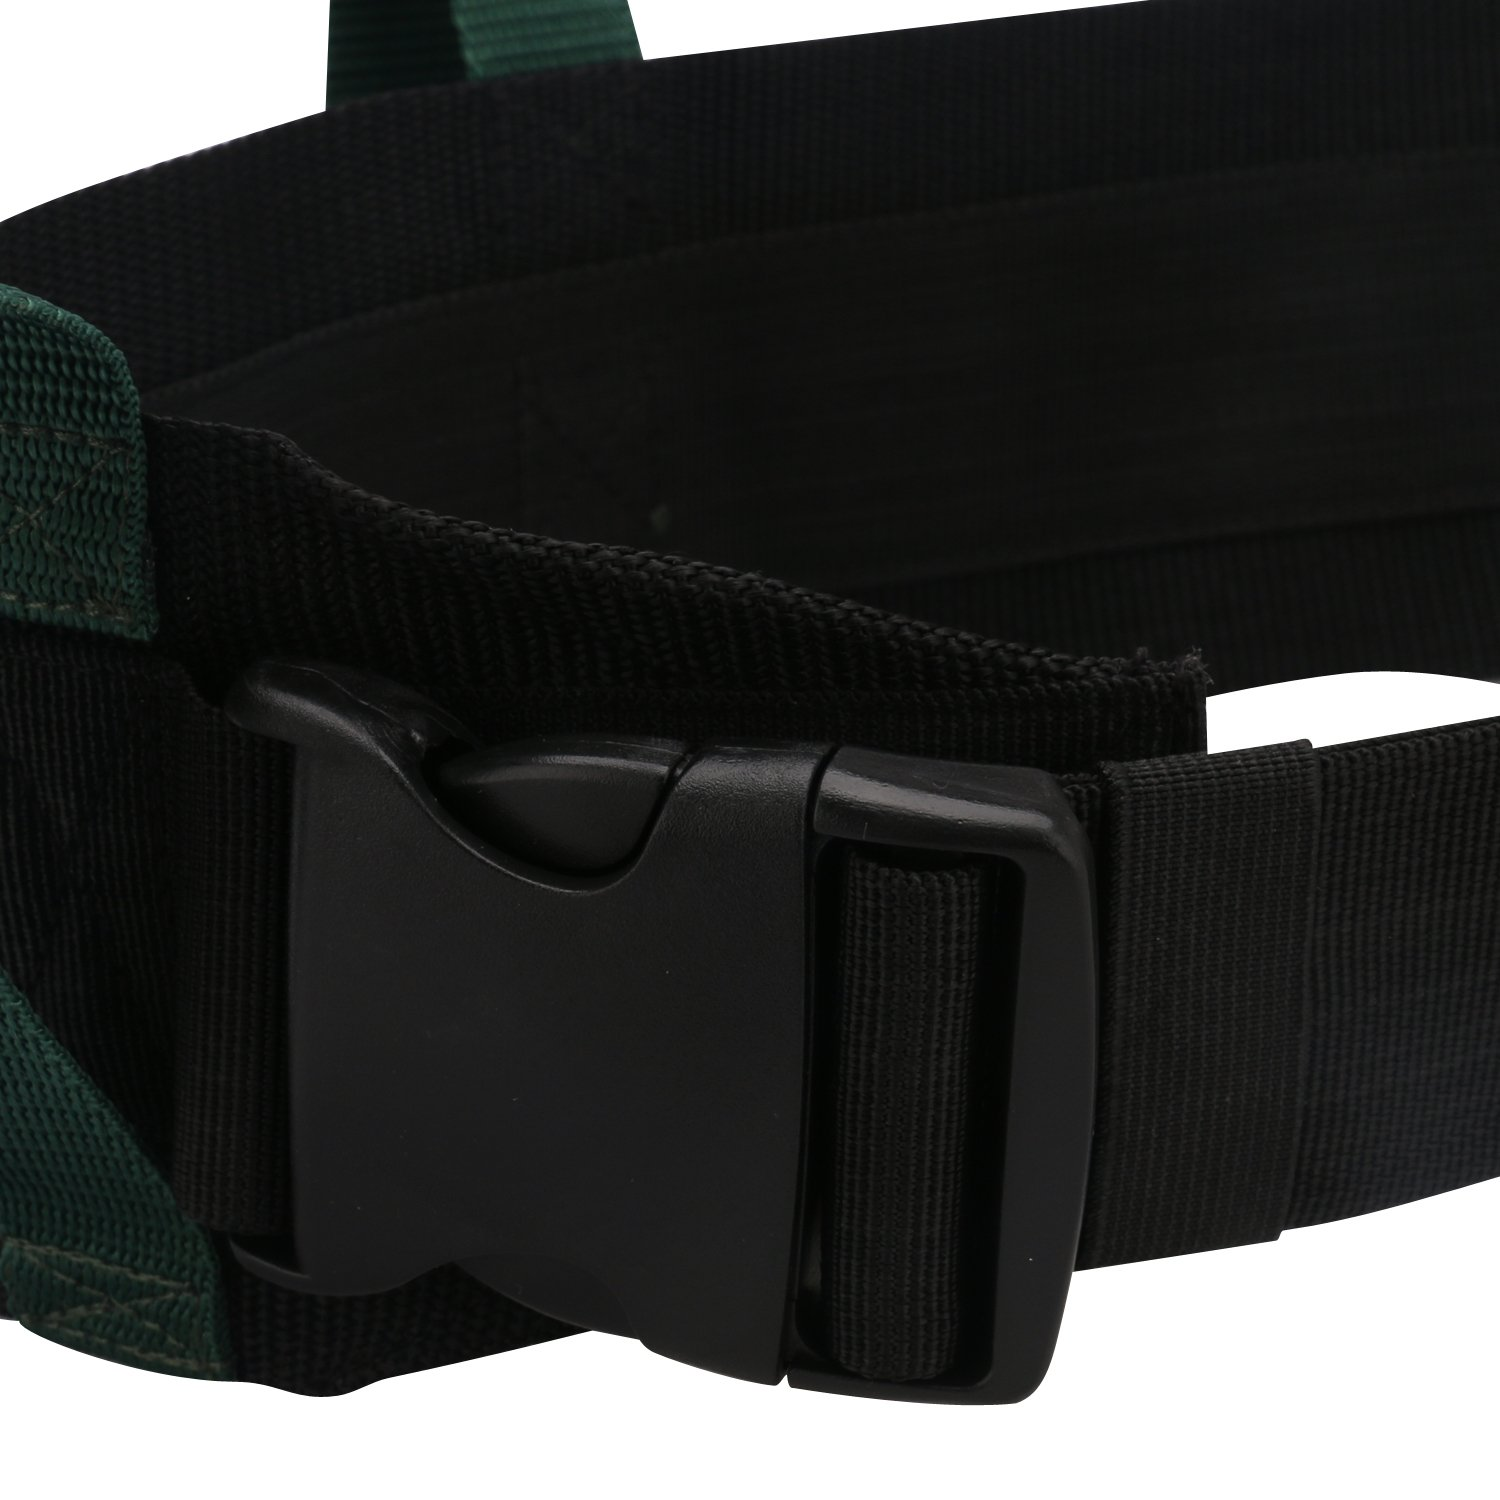 GUOER Transfer Walking Gait Belt with 4 Vertical Handles 3 Transverse Handles Gait Belt One Size Multi-Color Color 011